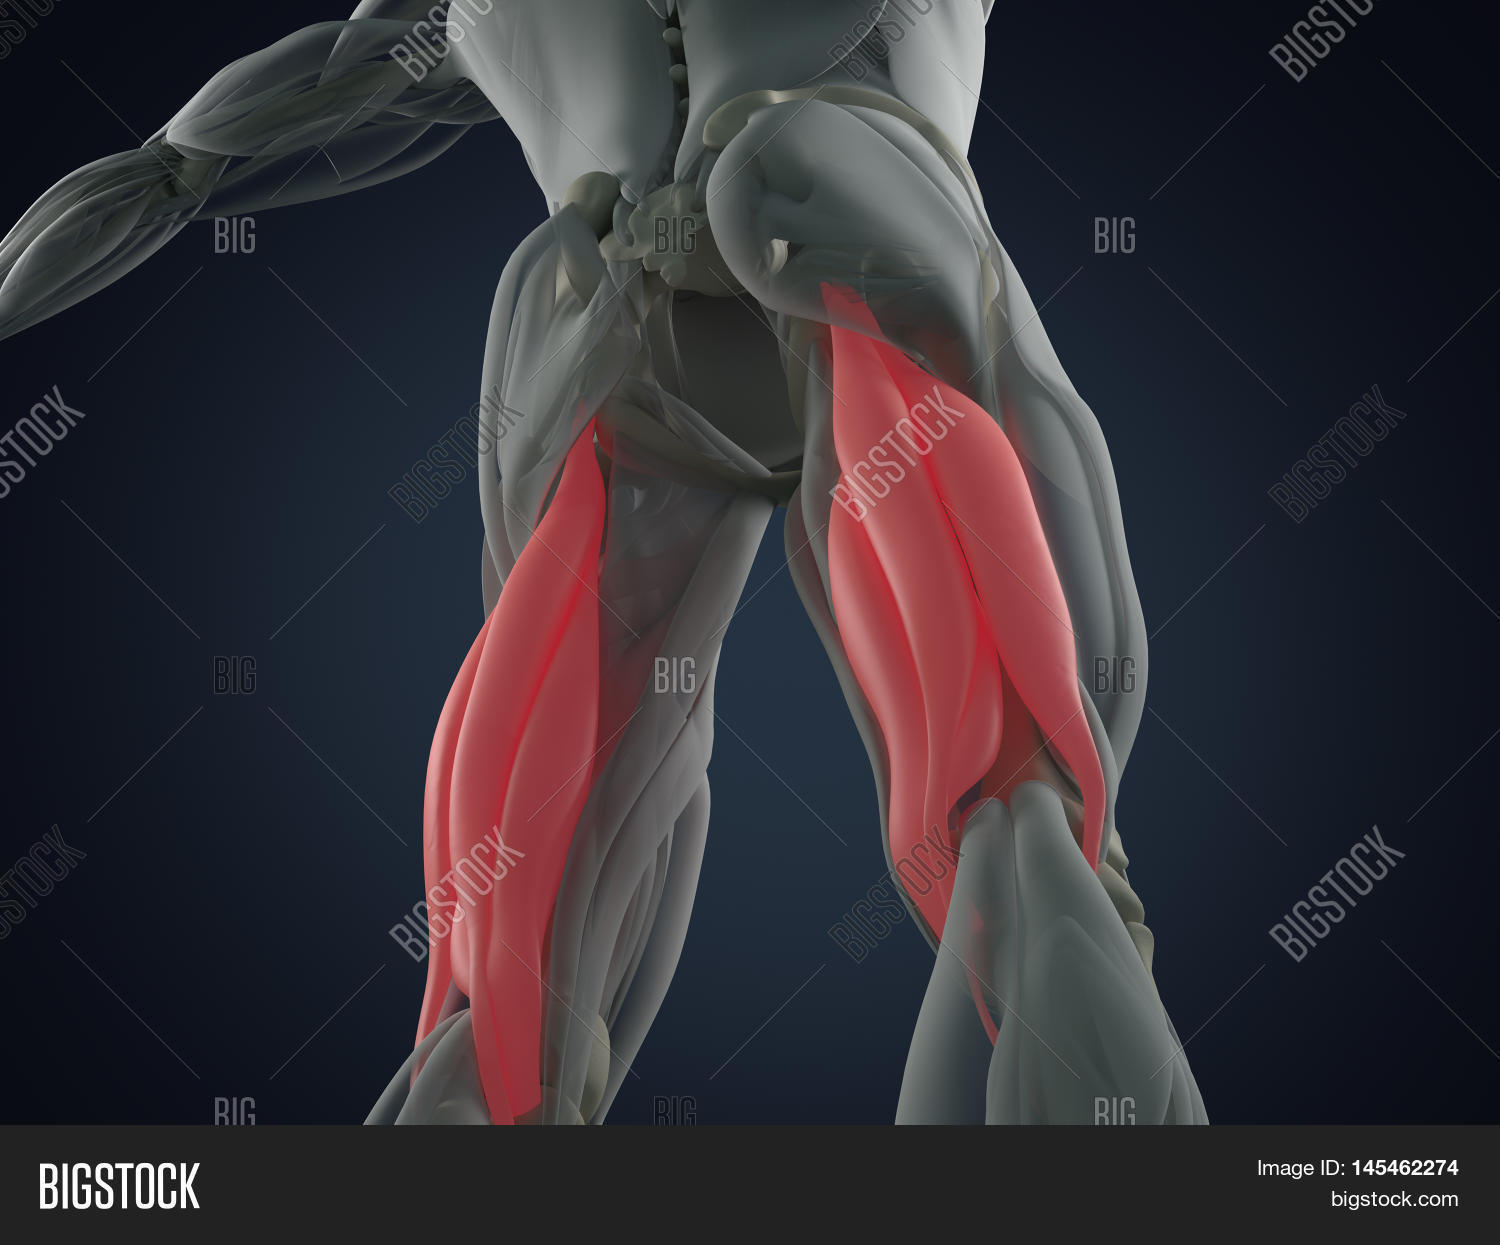 Hamstring Muscle Group Image & Photo (Free Trial) | Bigstock